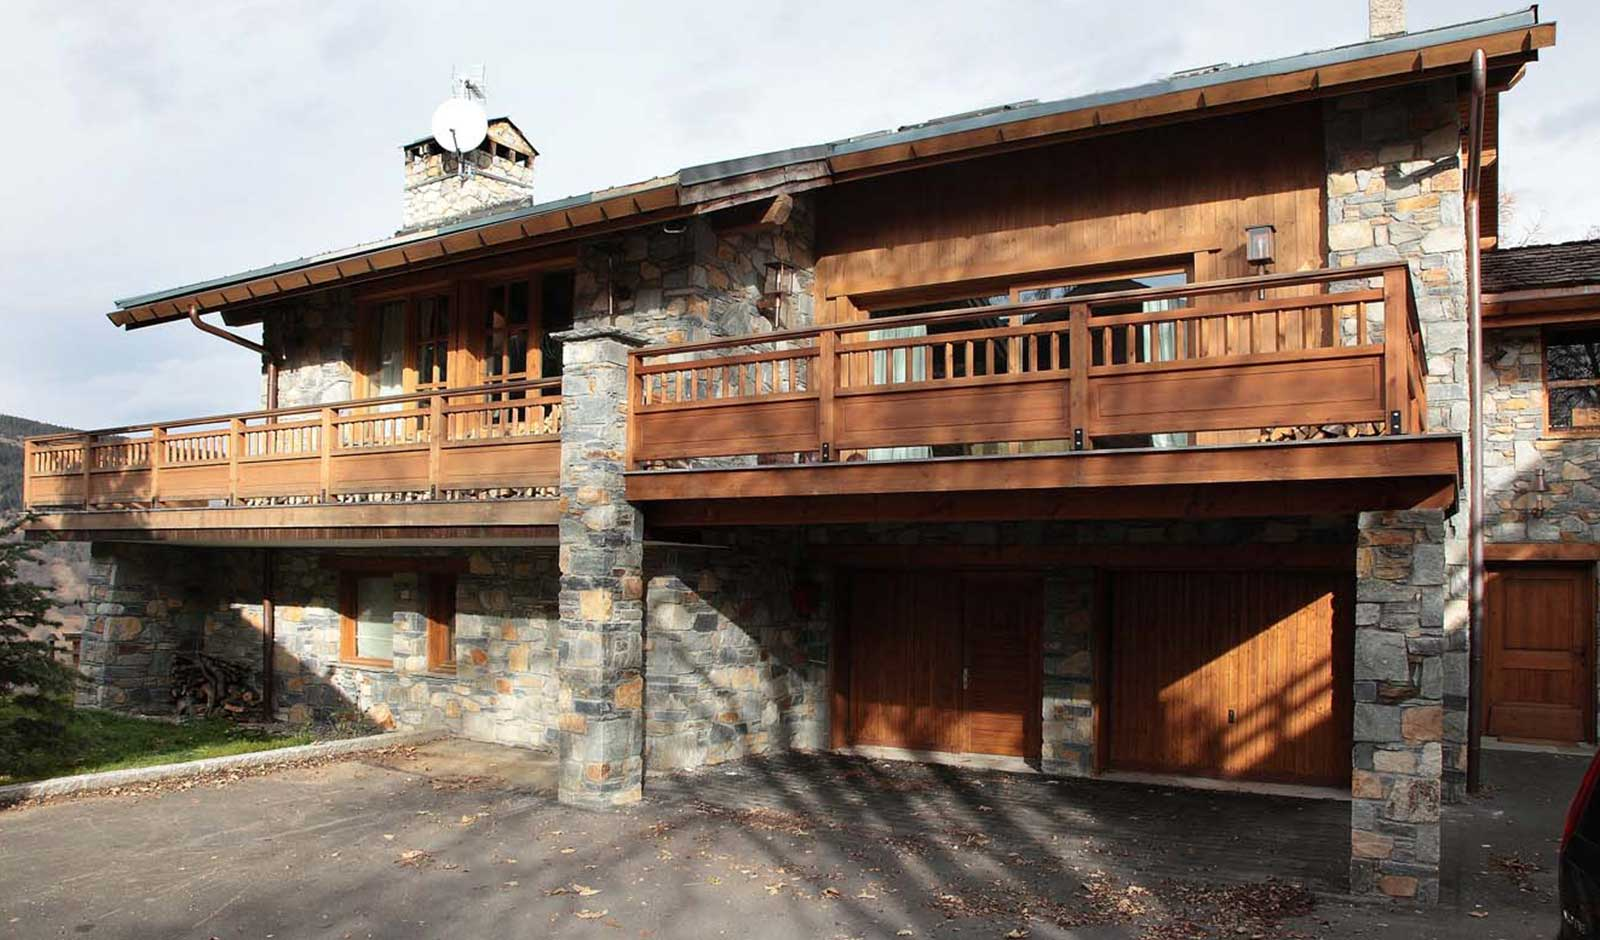 chalet-bonhomme-de-neige-4-atelier-crea-and-co-architecte-design-project-manager-meribel-savoie